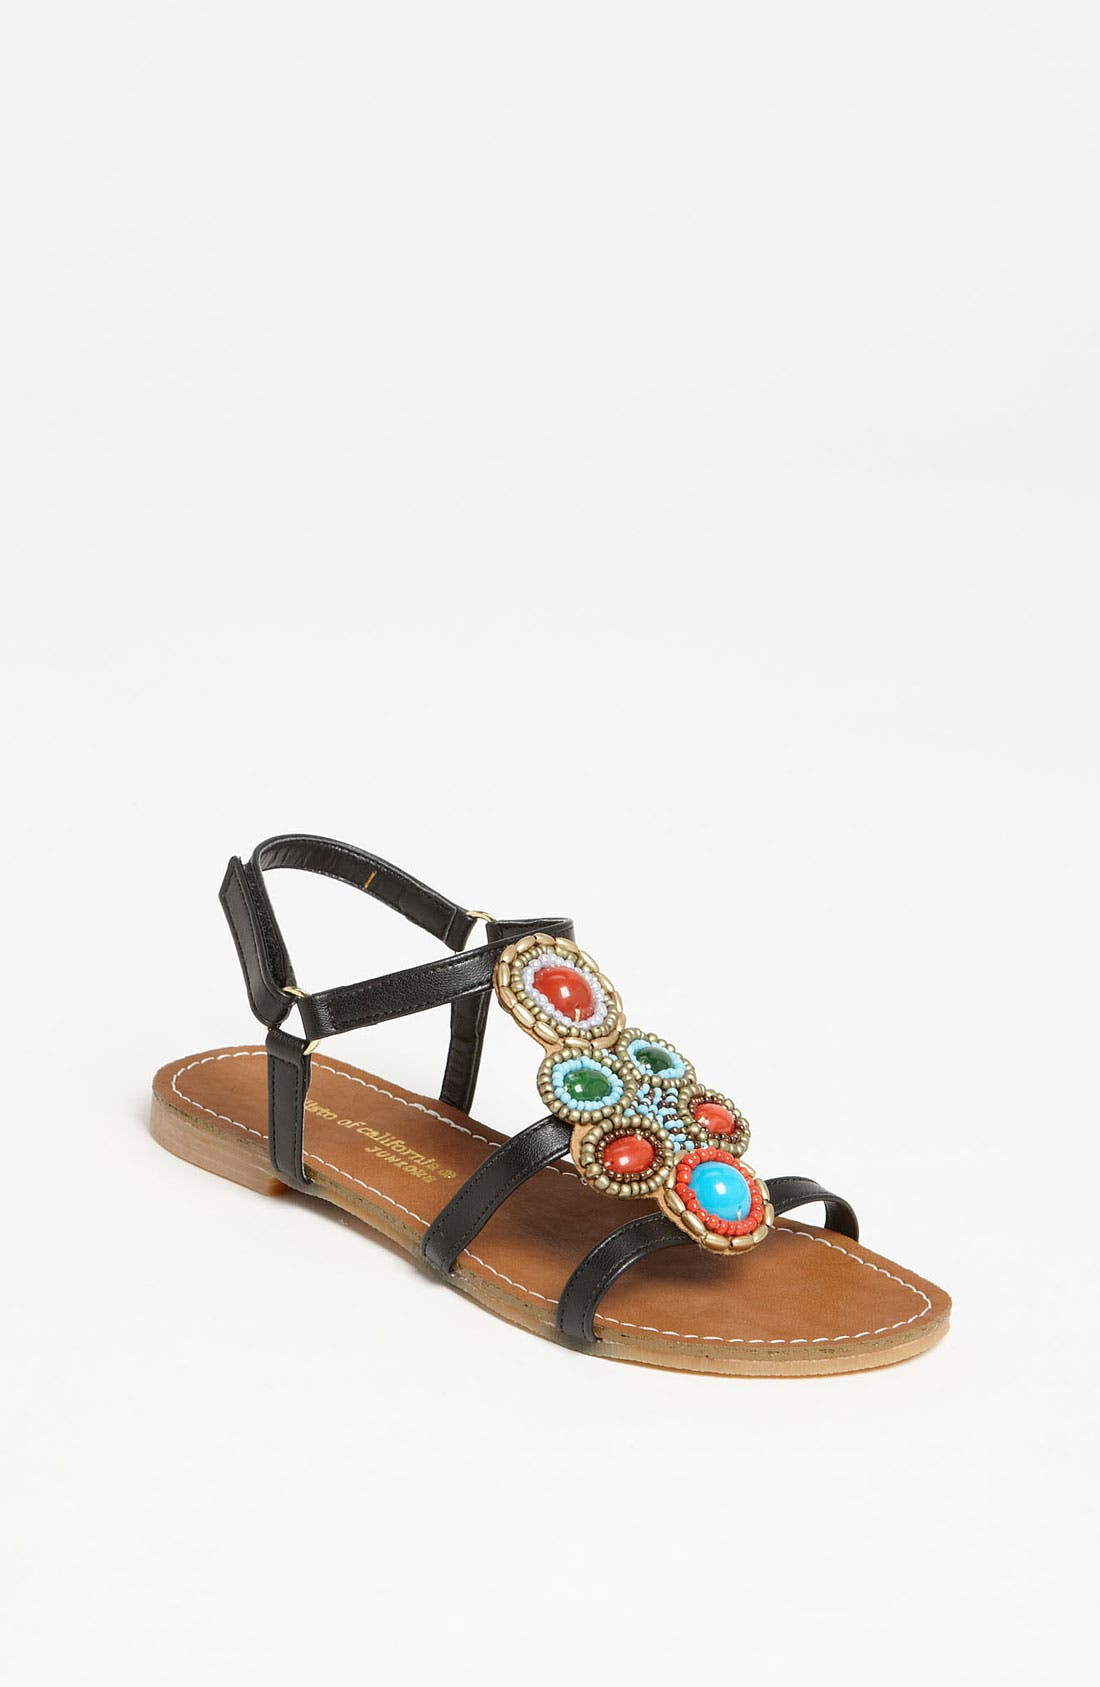 Alternate Image 1 Selected - Callisto 'Zamba' Sandal (Toddler, Little Kid & Big Kid)